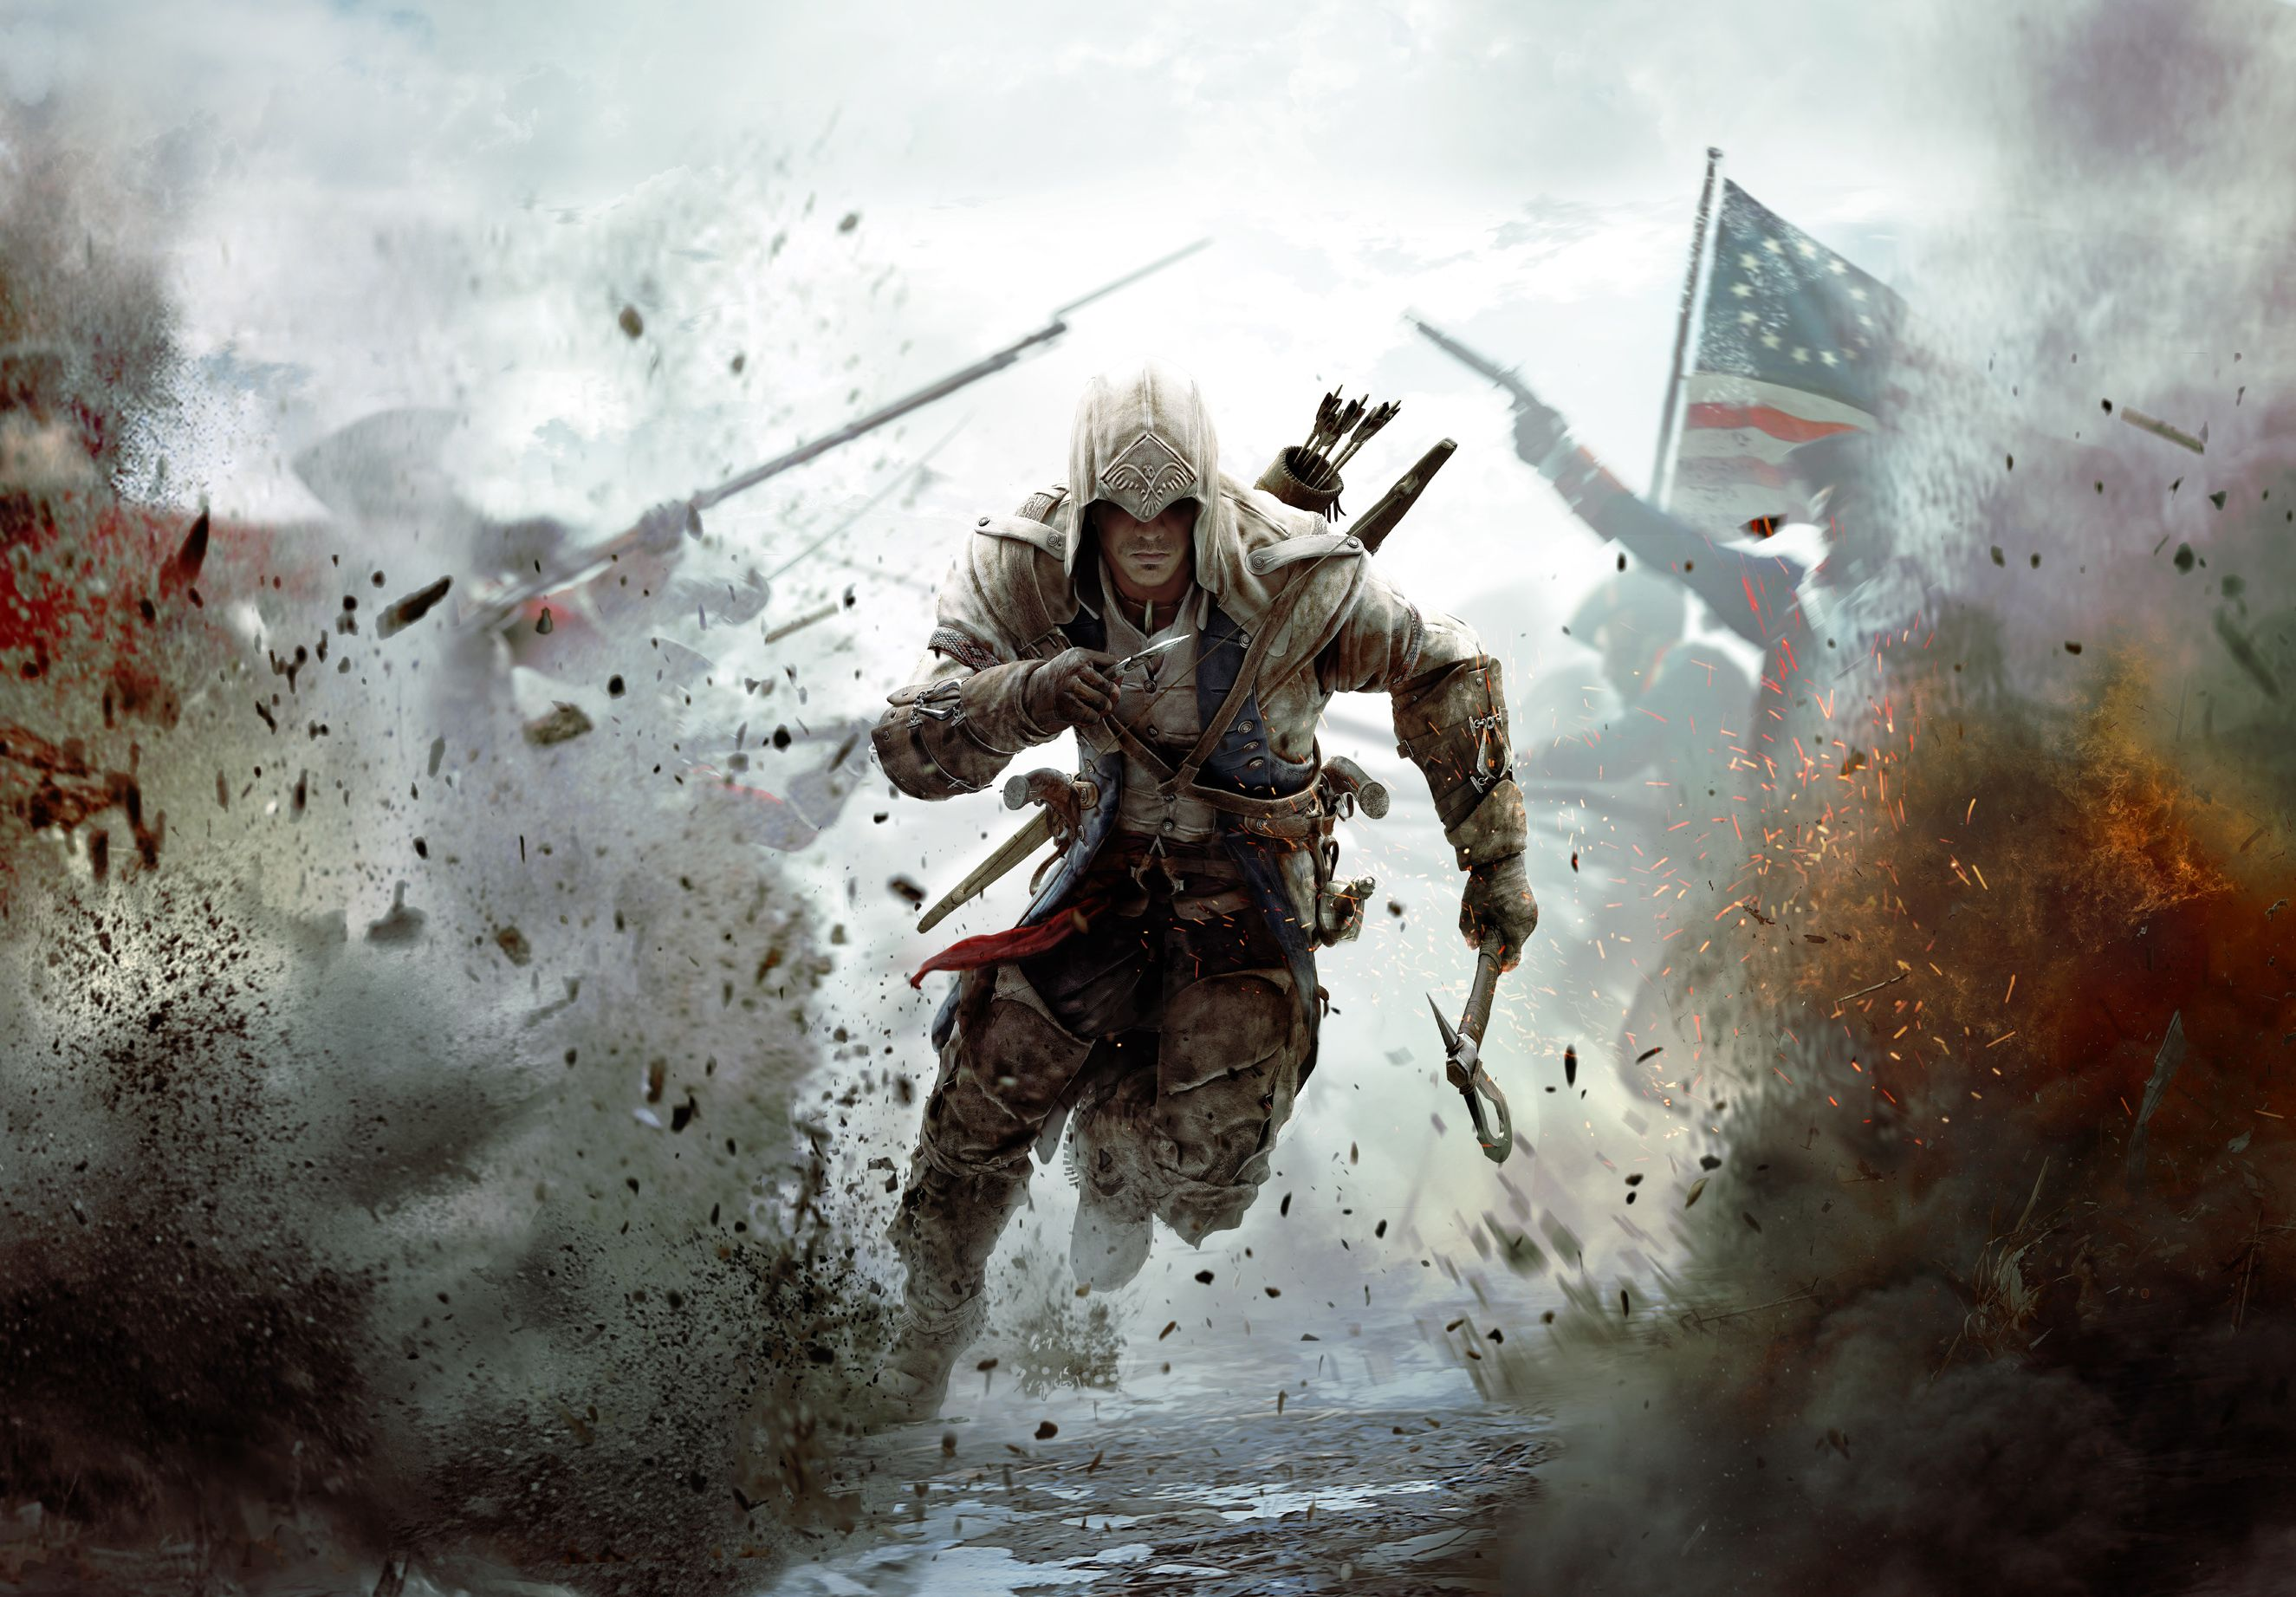 11. Assassin's Creed